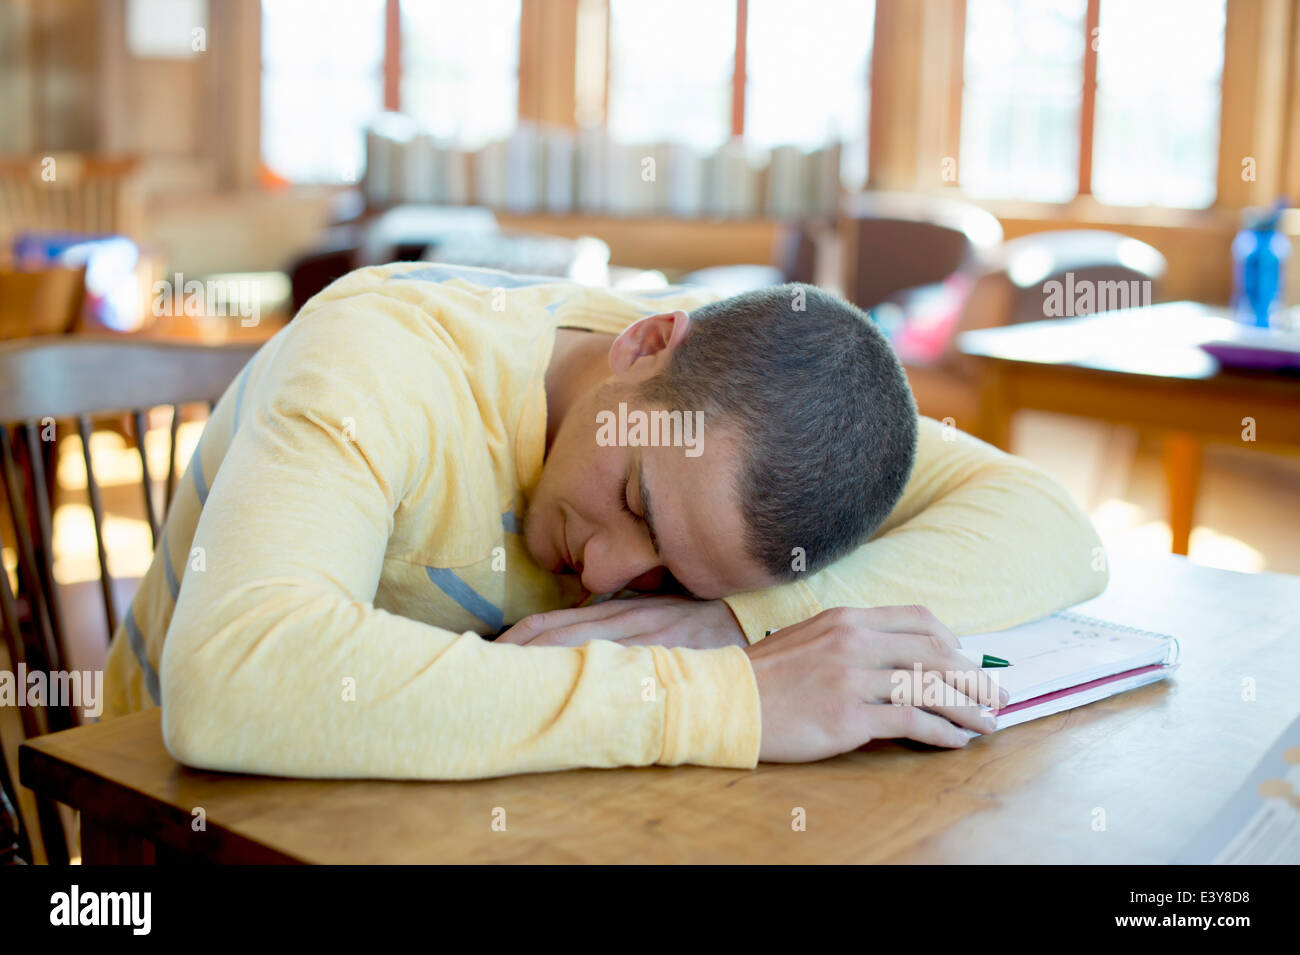 Young man asleep on book - Stock Image